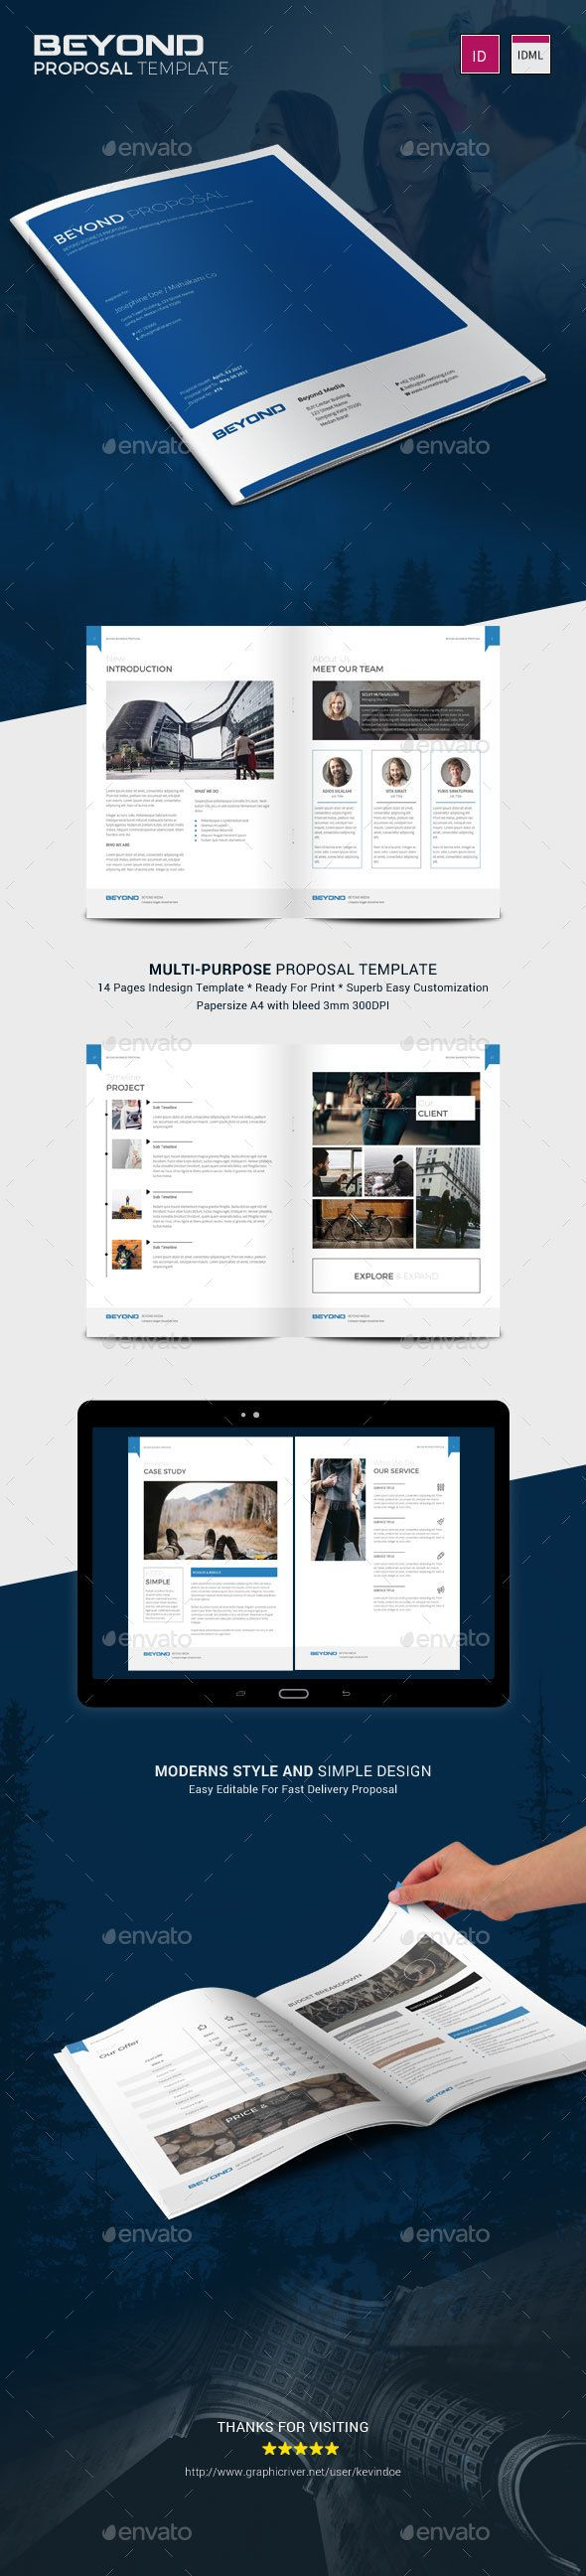 Buy Beyond Proposal by kevindoe on GraphicRiver